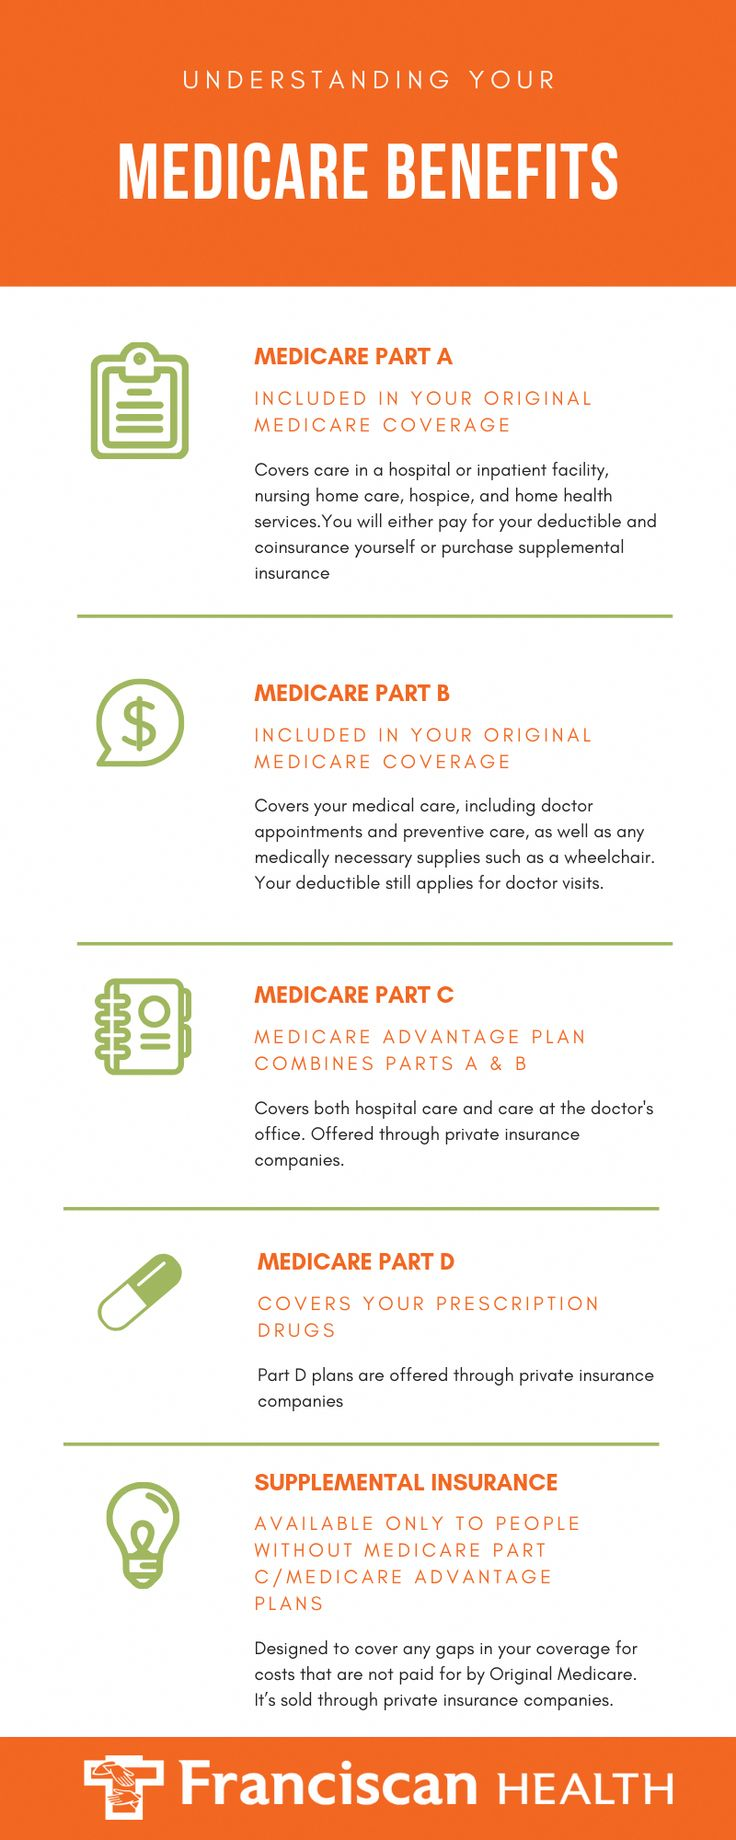 Medicare is the federal health insurance program for